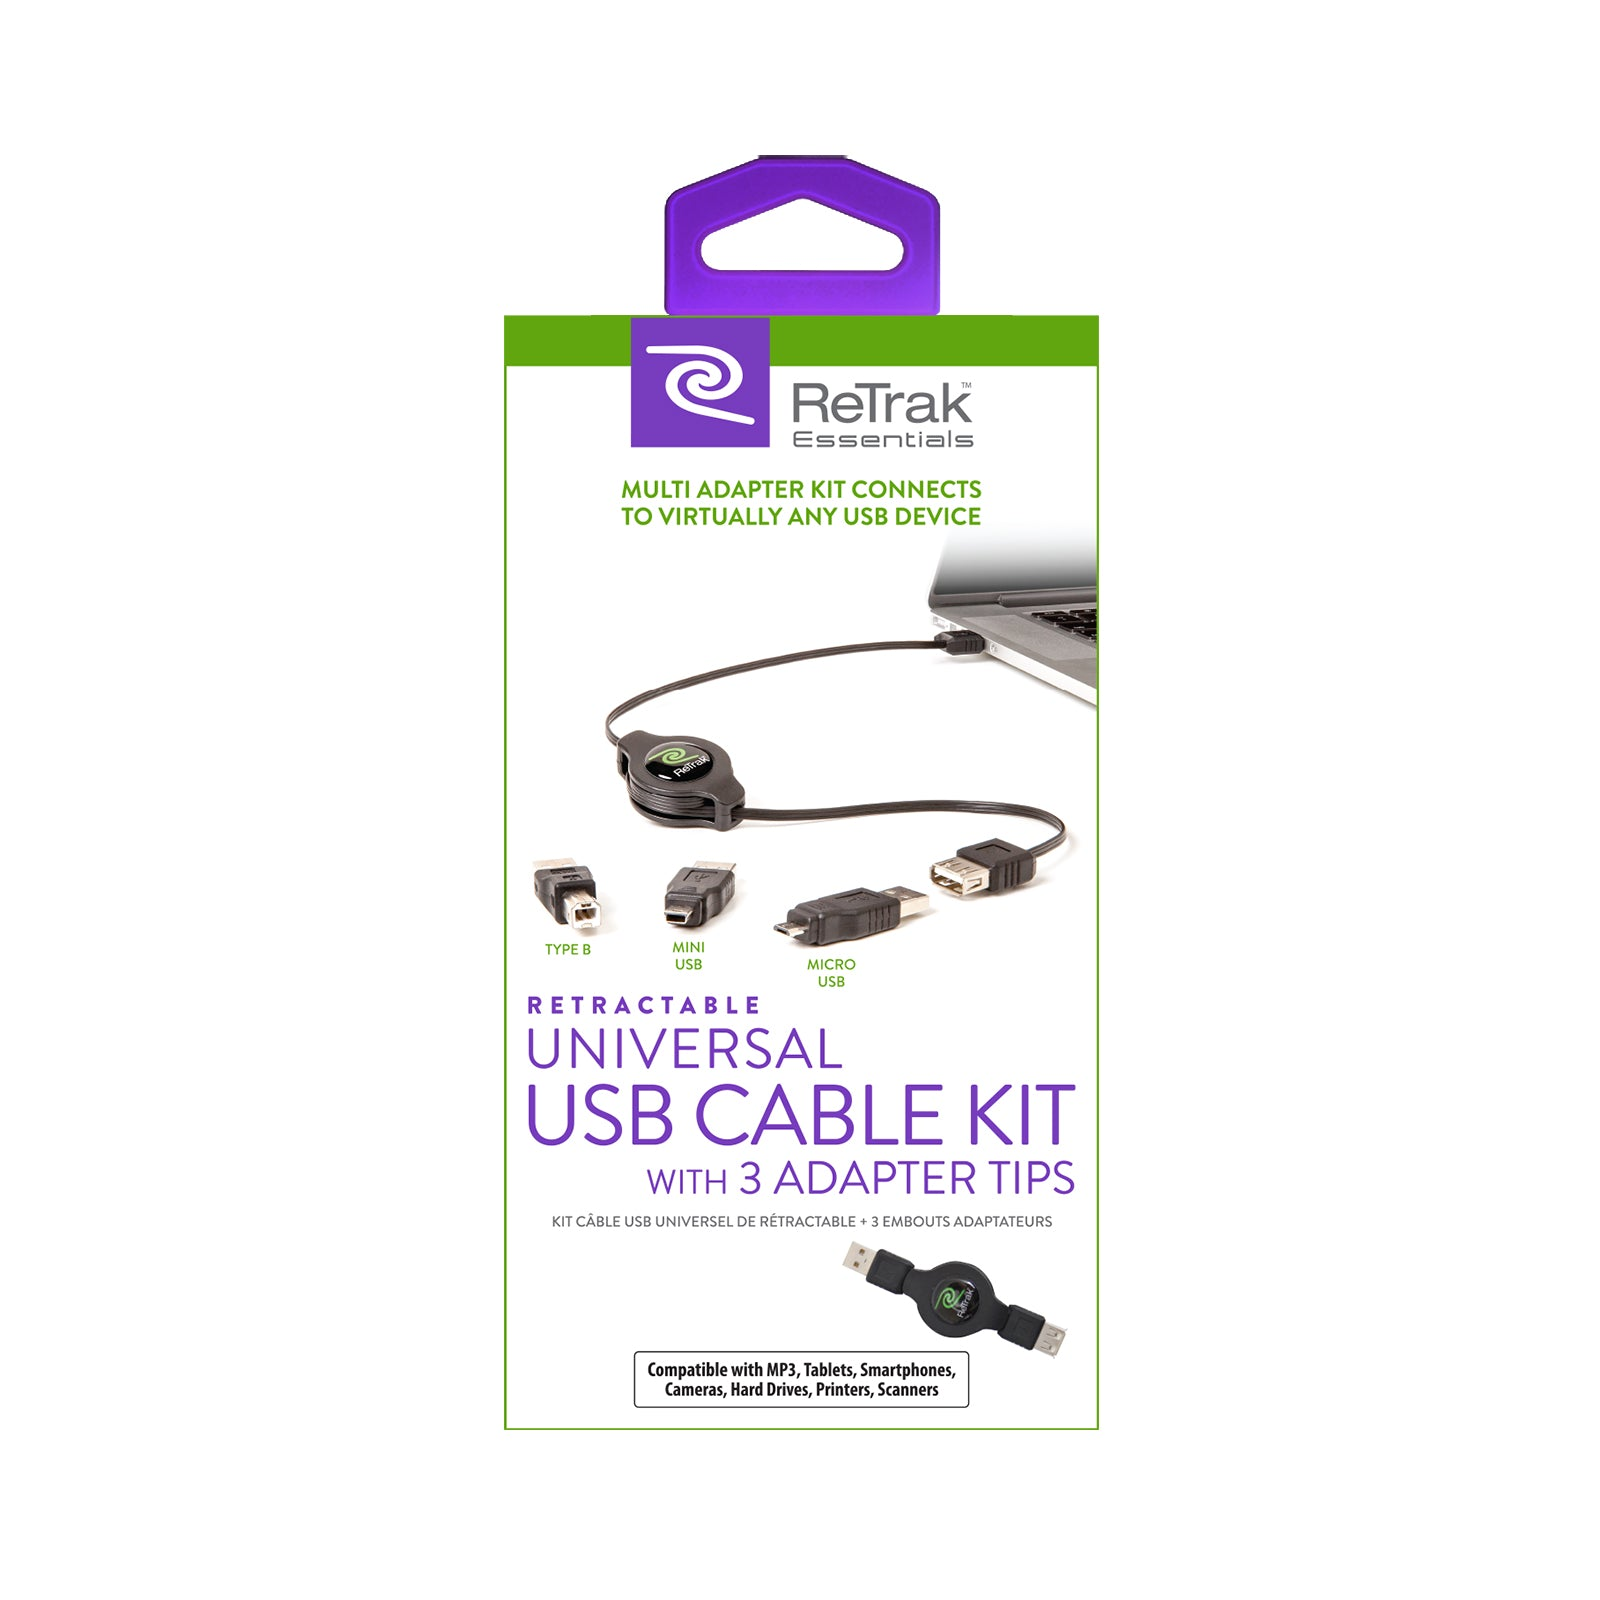 USB Universal Extension Cable | 3 Adapters - USB B, Micro 5, and Mini 5 | Retractable Cable